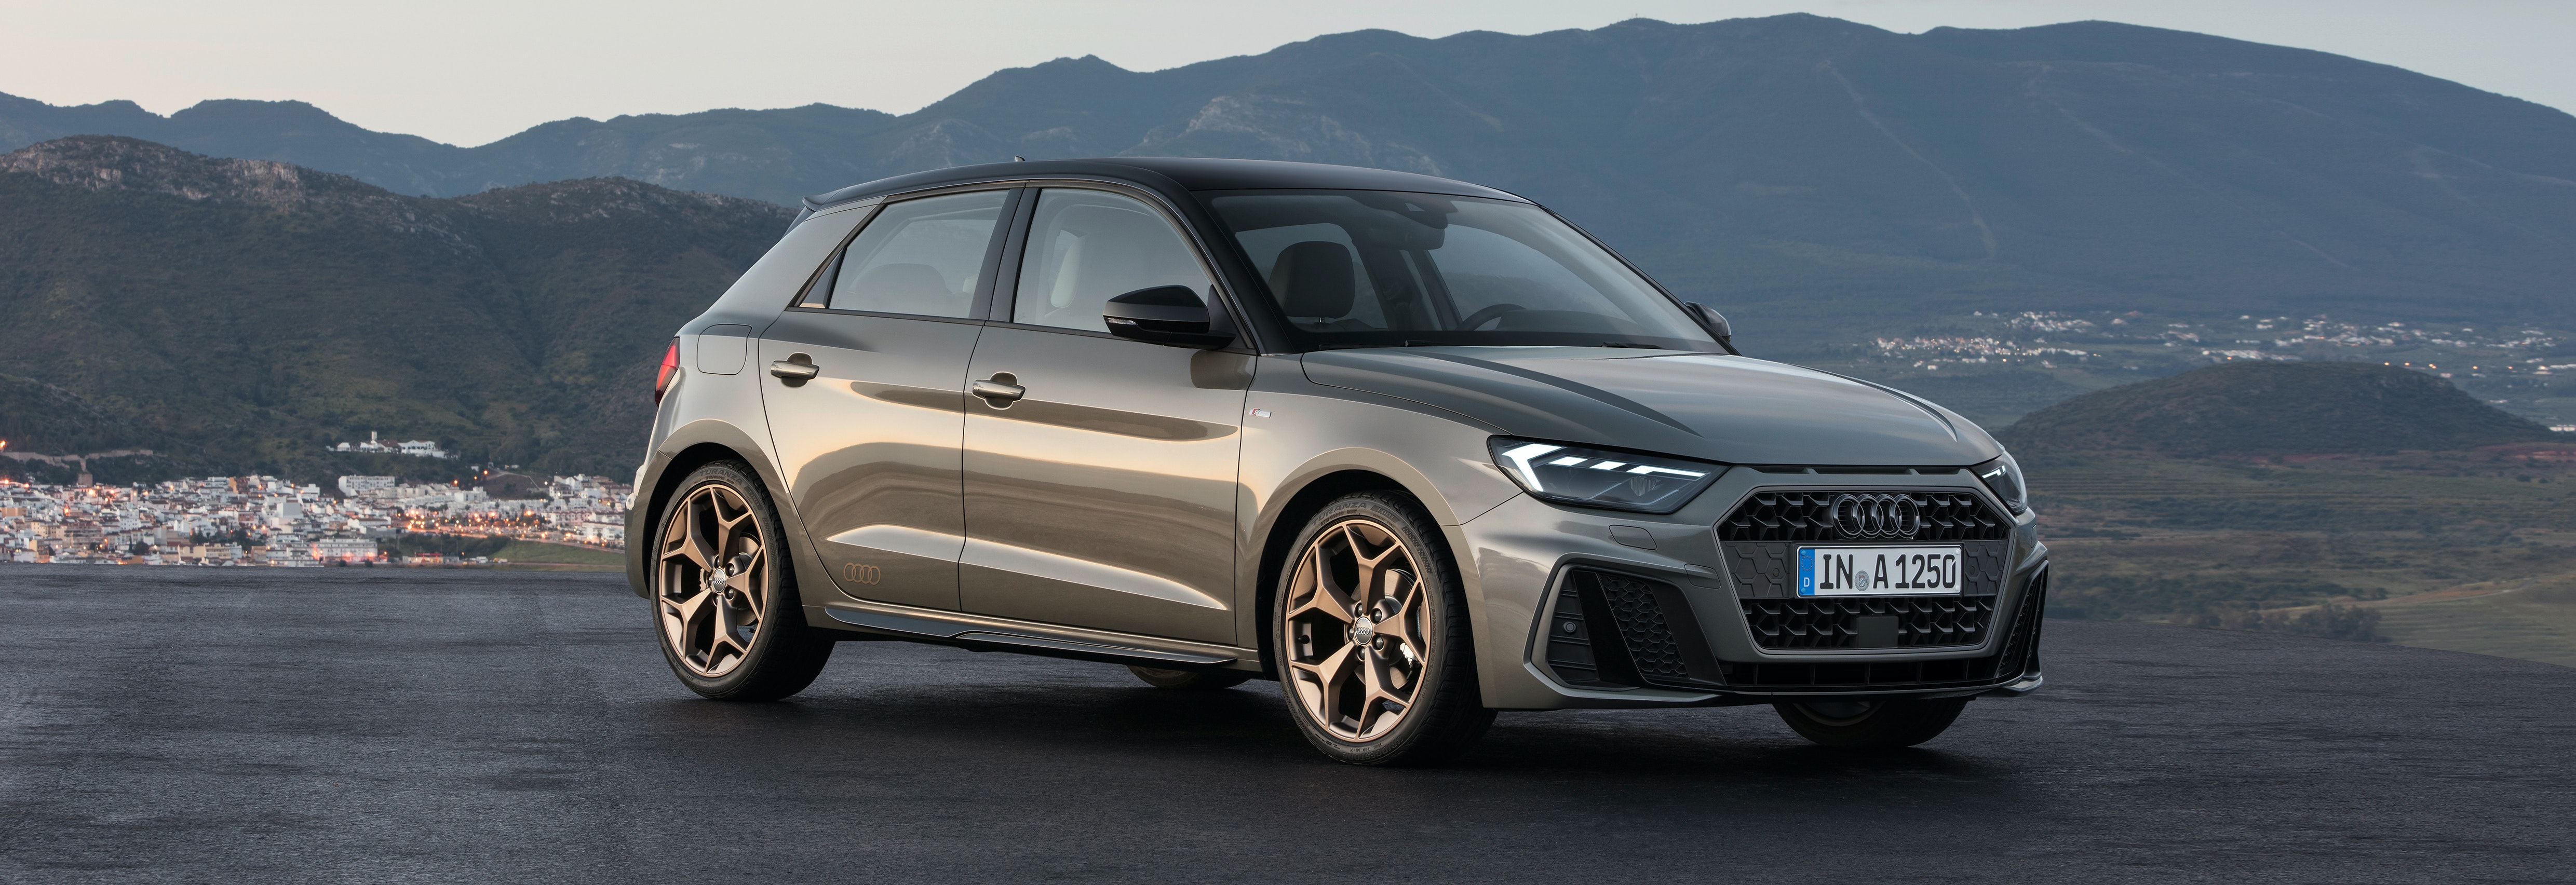 Superb 2018 Audi A1 Gray Parked Front